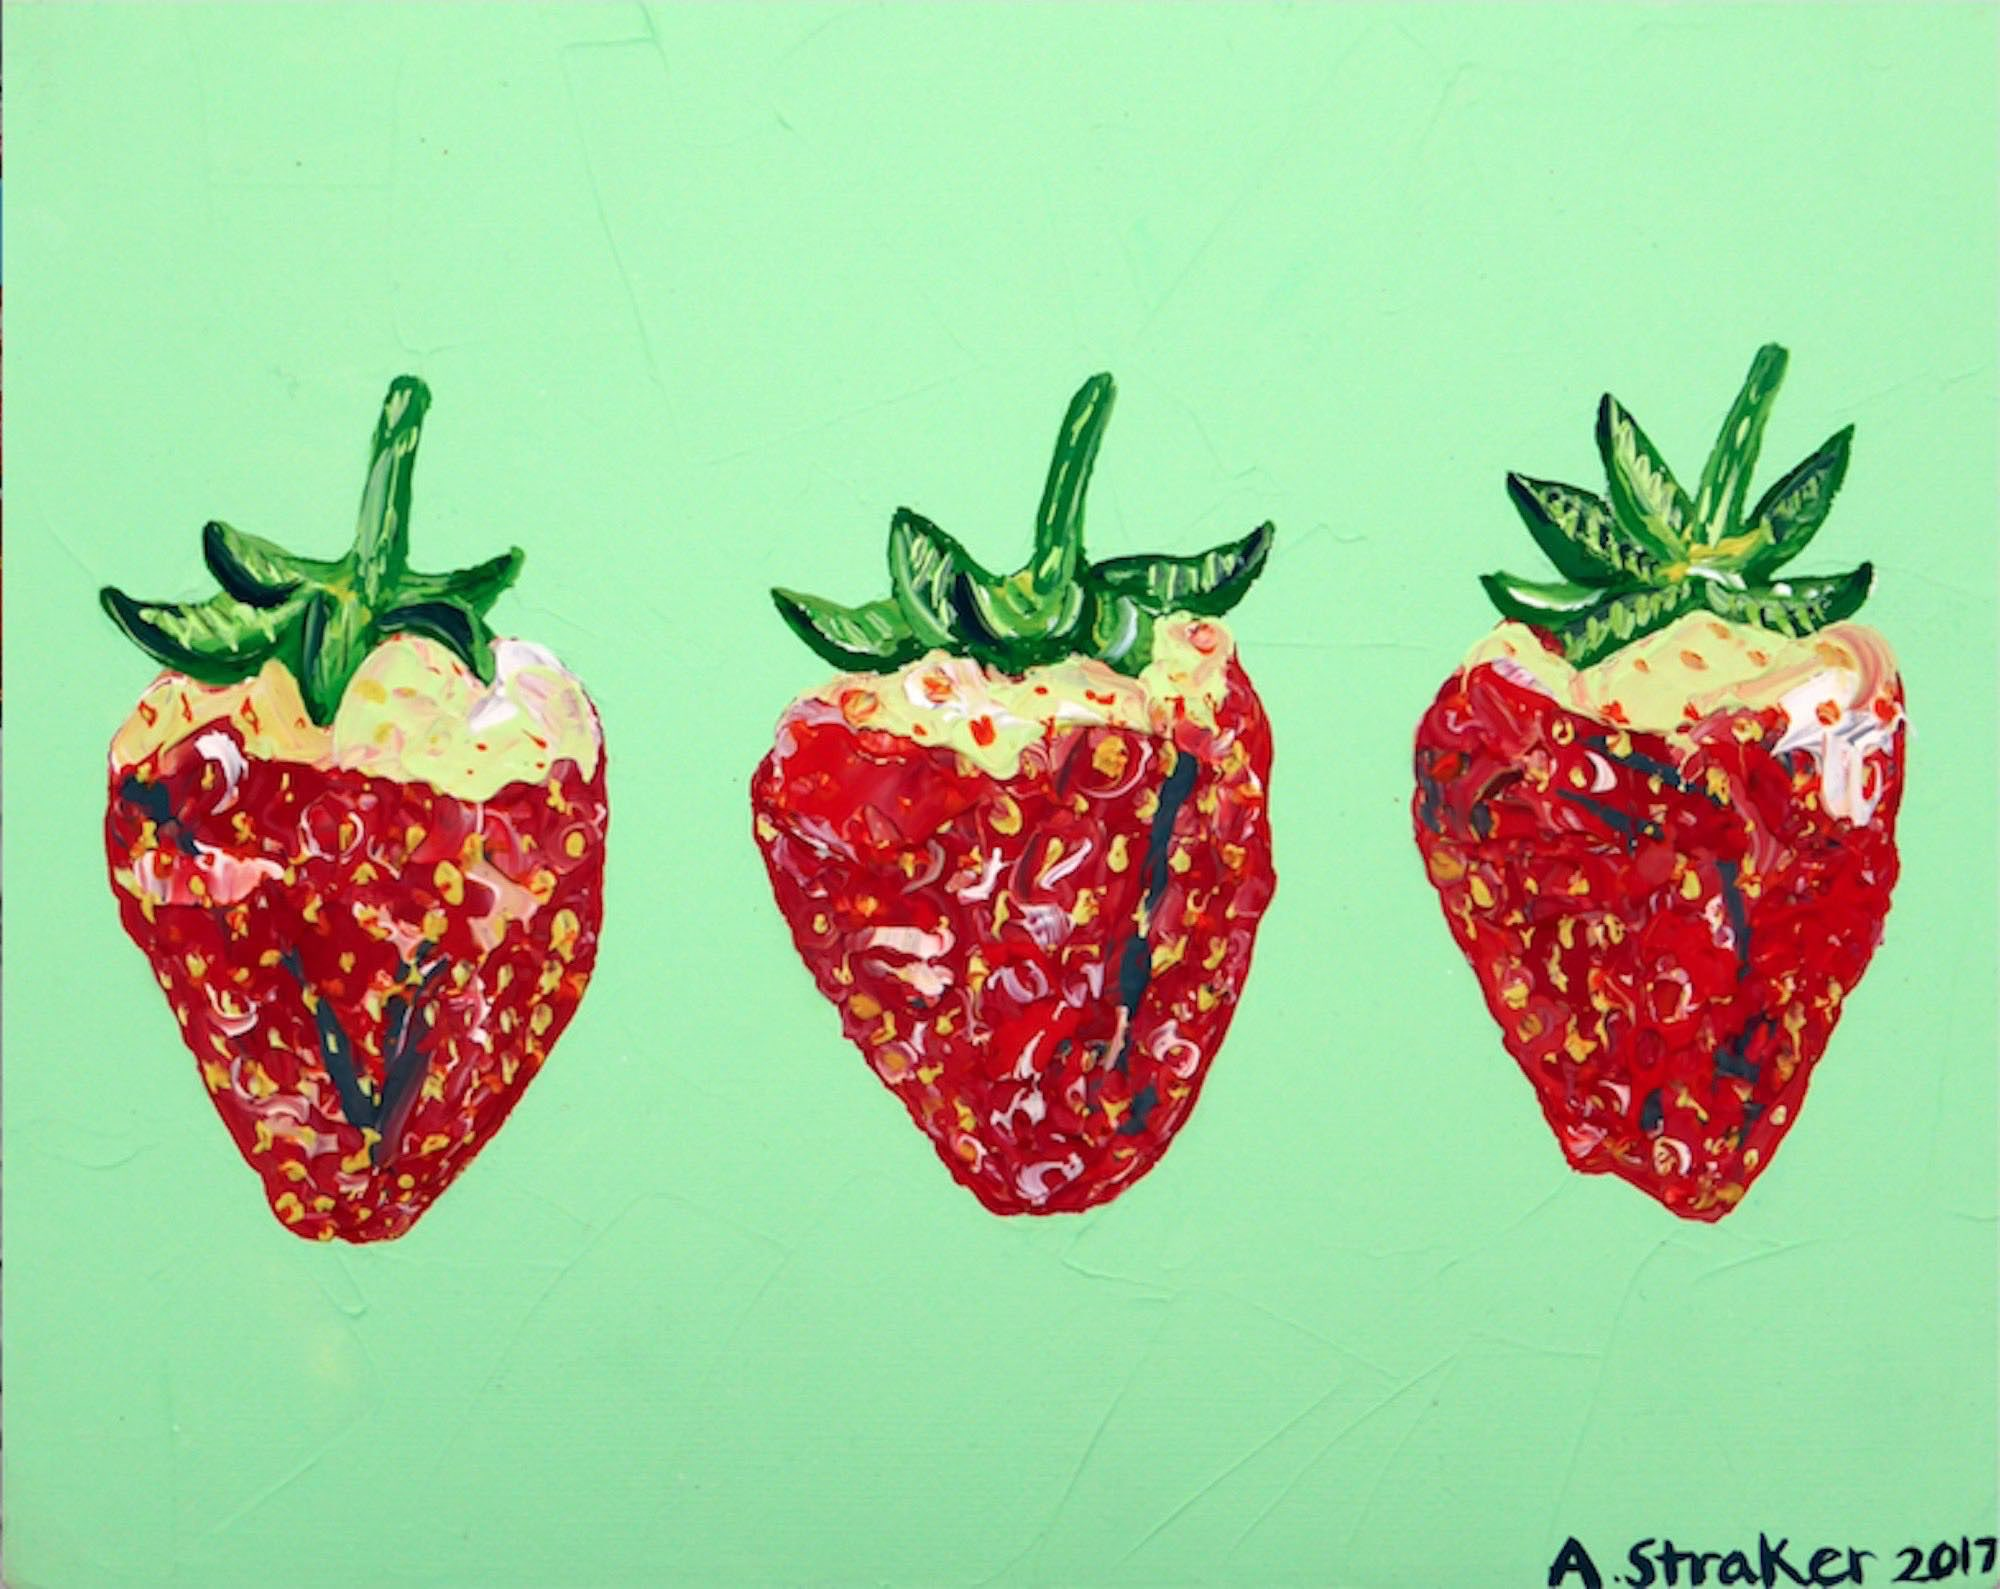 3 Strawberries Alice Straker .jpg